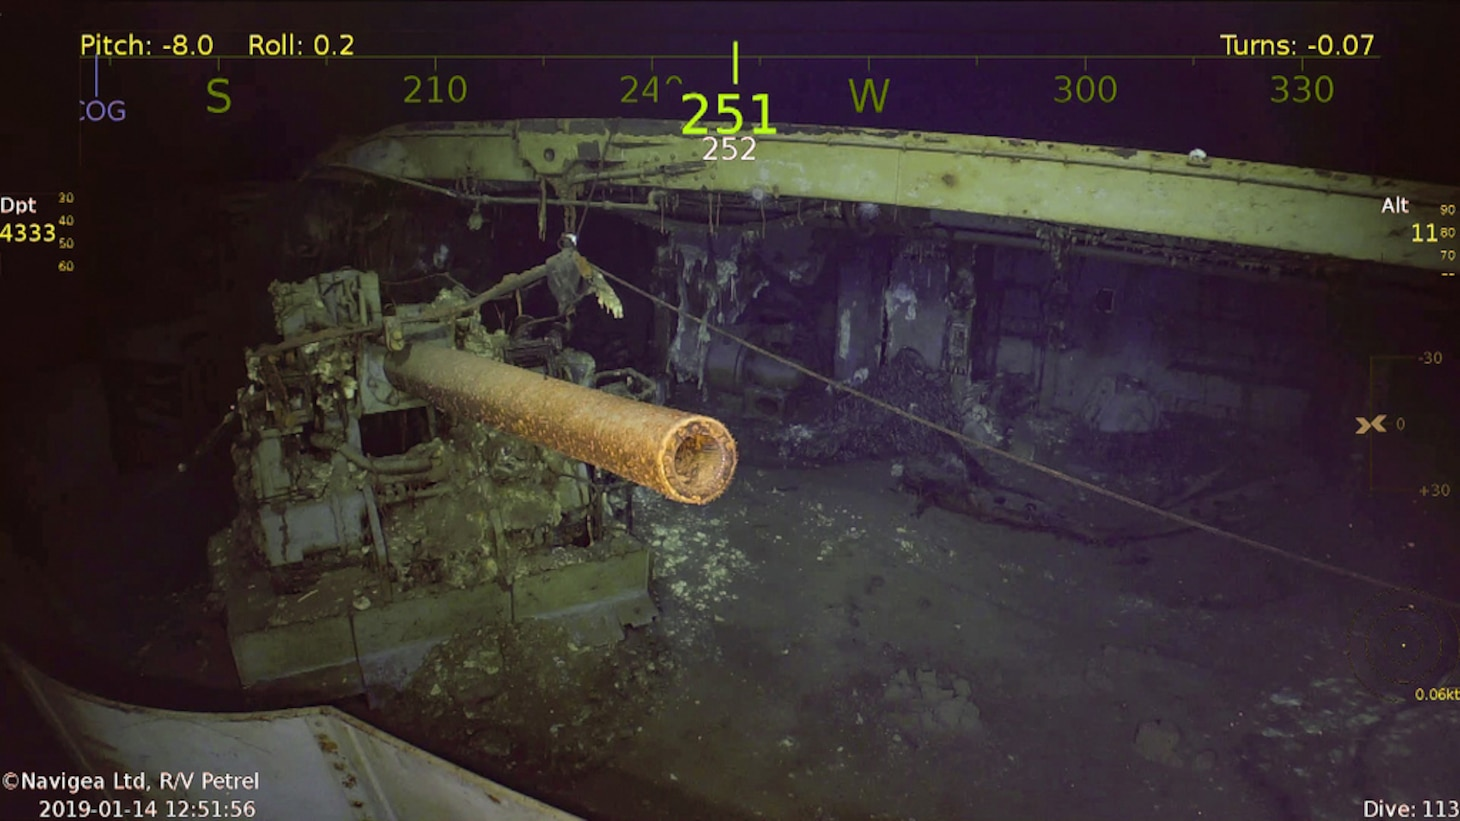 A 5-inch gun on USS Wasp (CV 7), which was discovered on Jan. 14, 2019, by the expedition crew of Paul G. Allen's research vessel (R/V) Petrel.